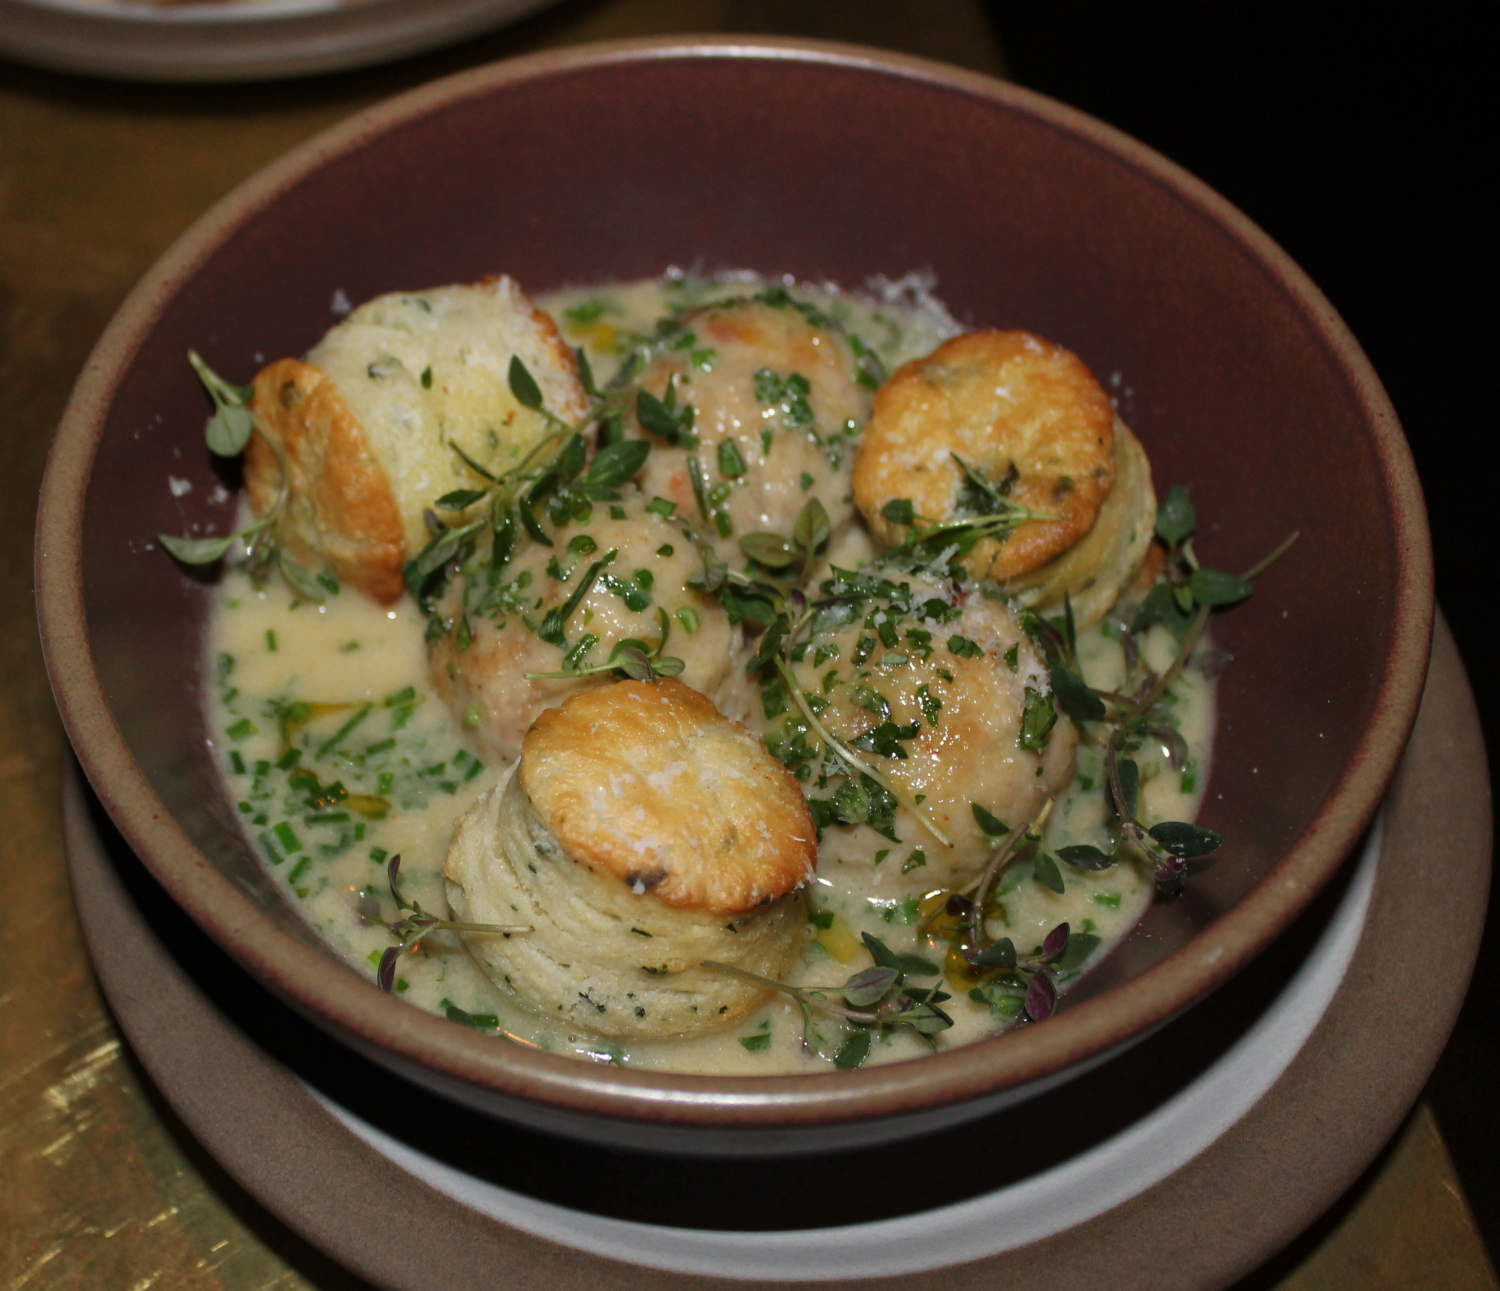 Rabbit Boulettes with Herb Dumplings and Maple Cream